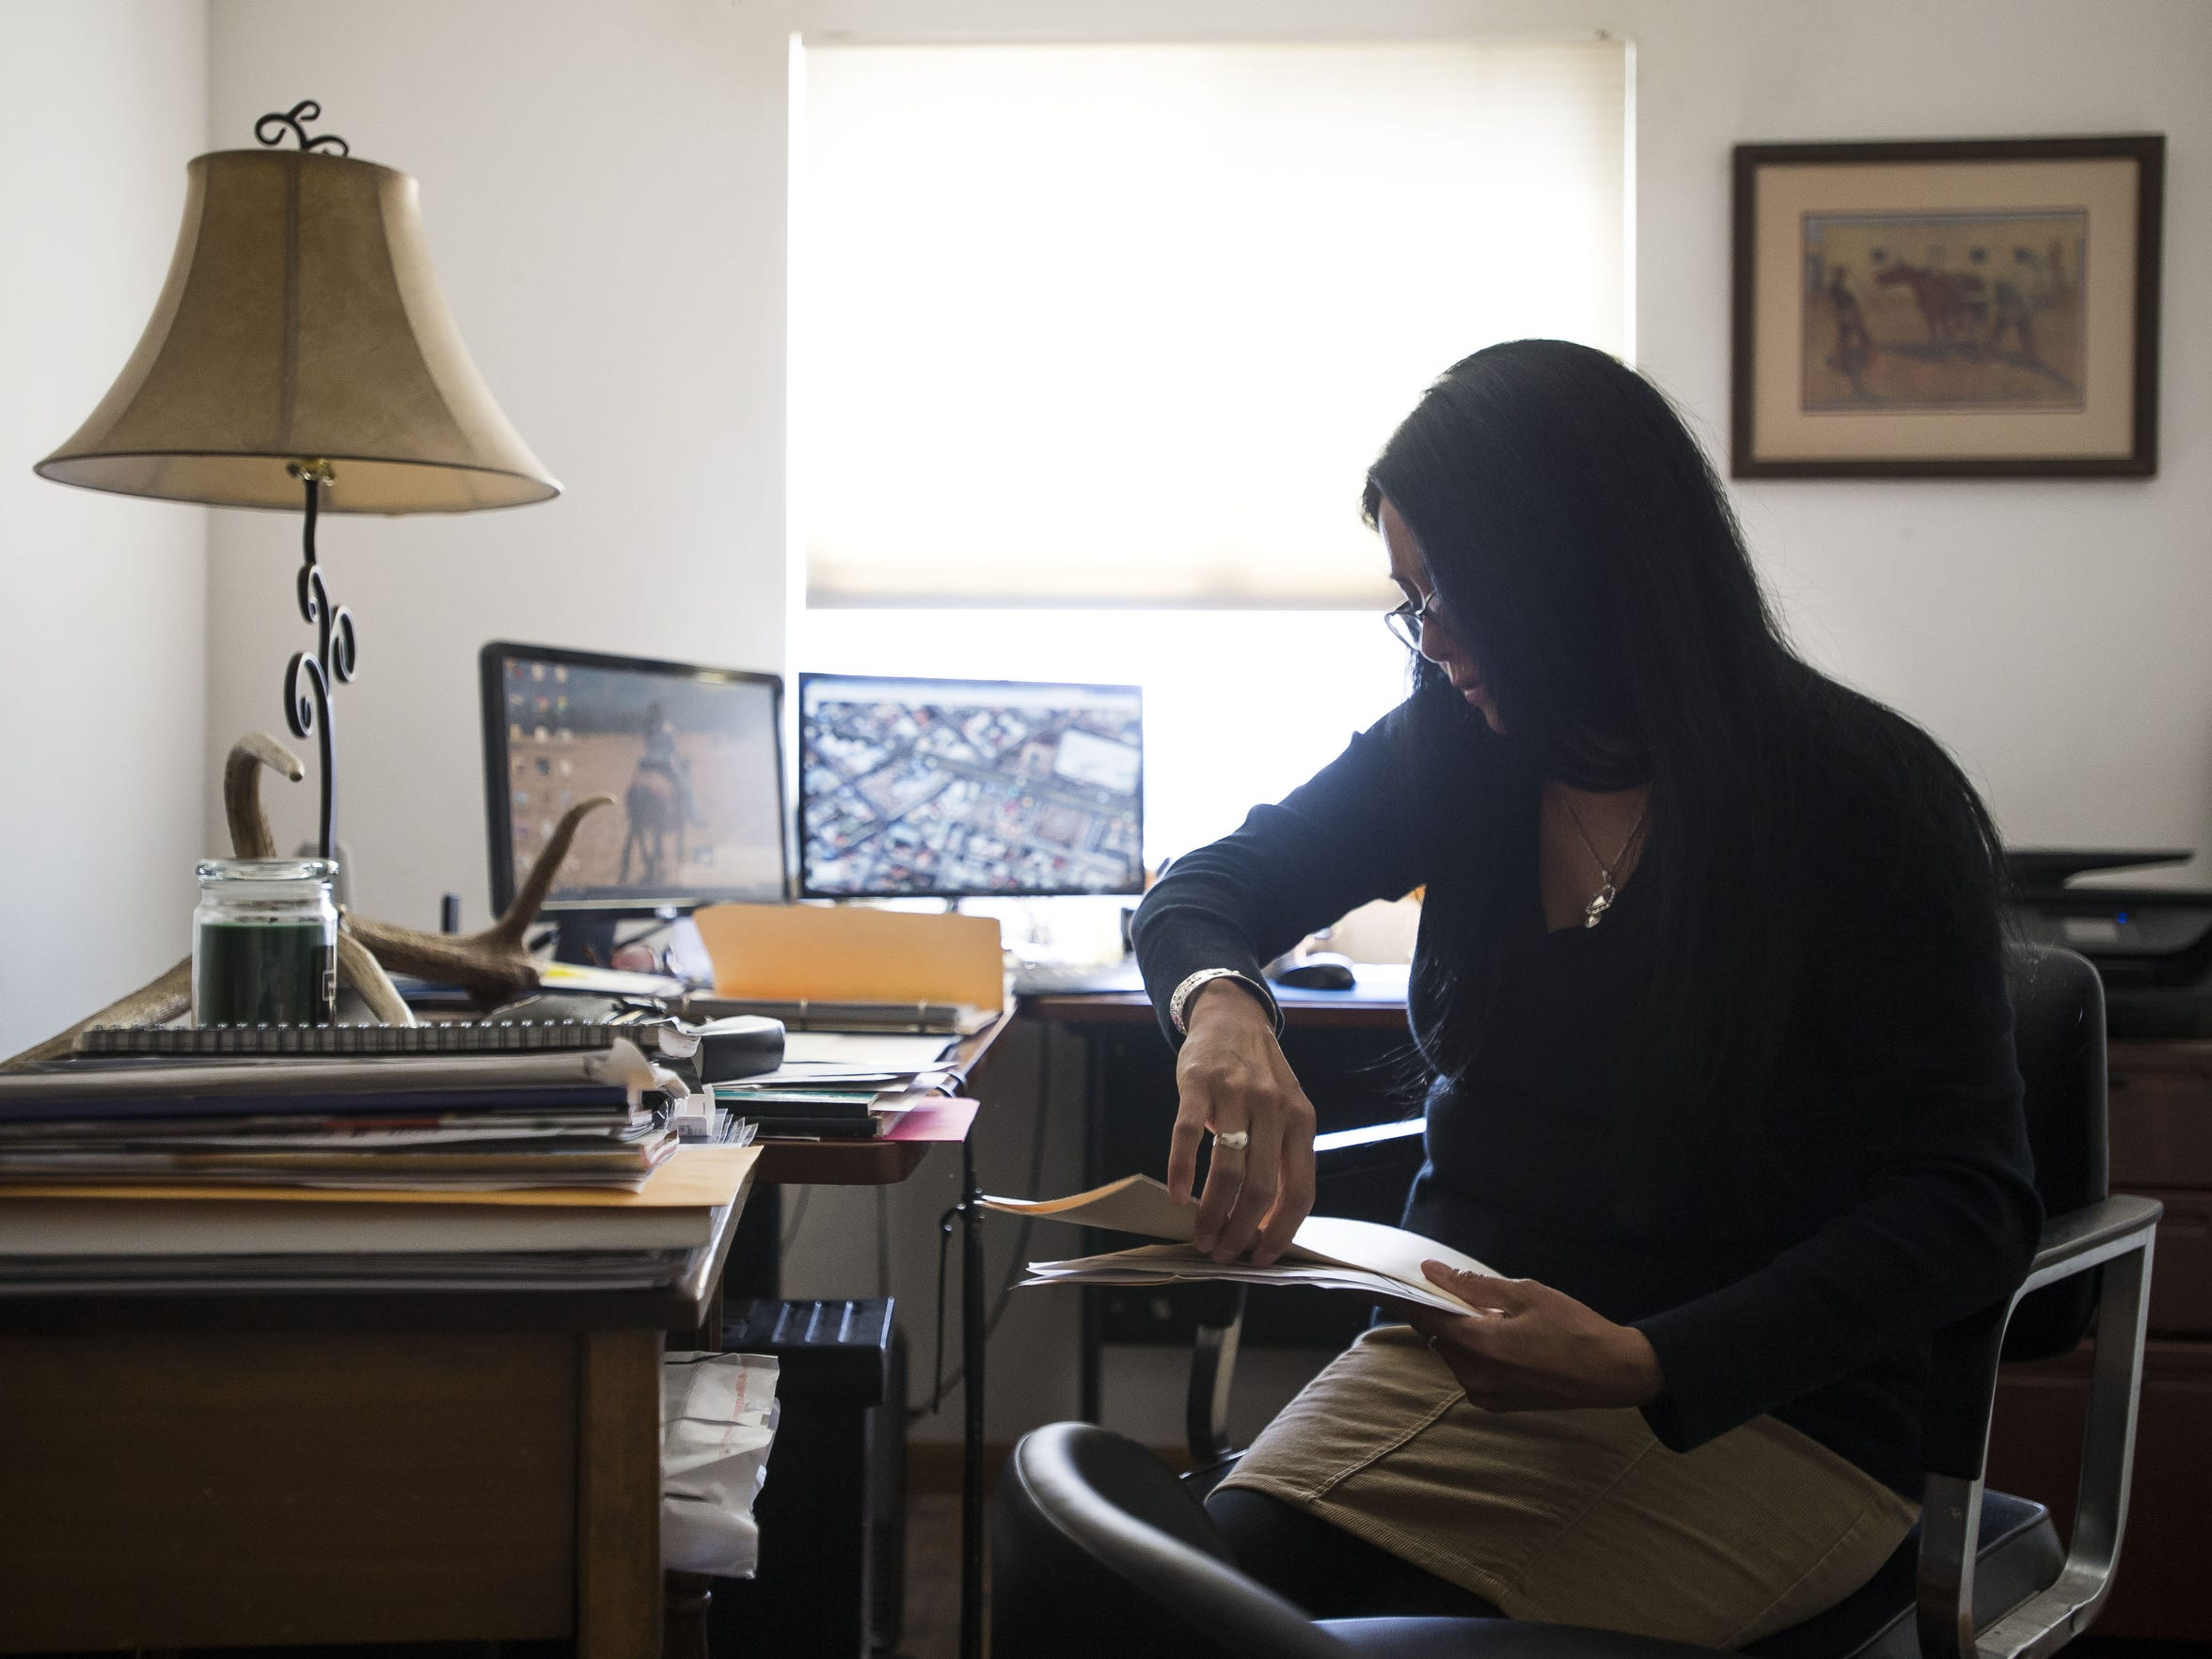 Lydia Lerma, the mother of the first victim who came forward in a child sexual assault case against Andrew Vanderwal, digs through documents and evidence on April 10, 2018, in the home office at her home in Fort Collins, Colorado. Lerma had collected the evidence during her hunt for Vanderwal.